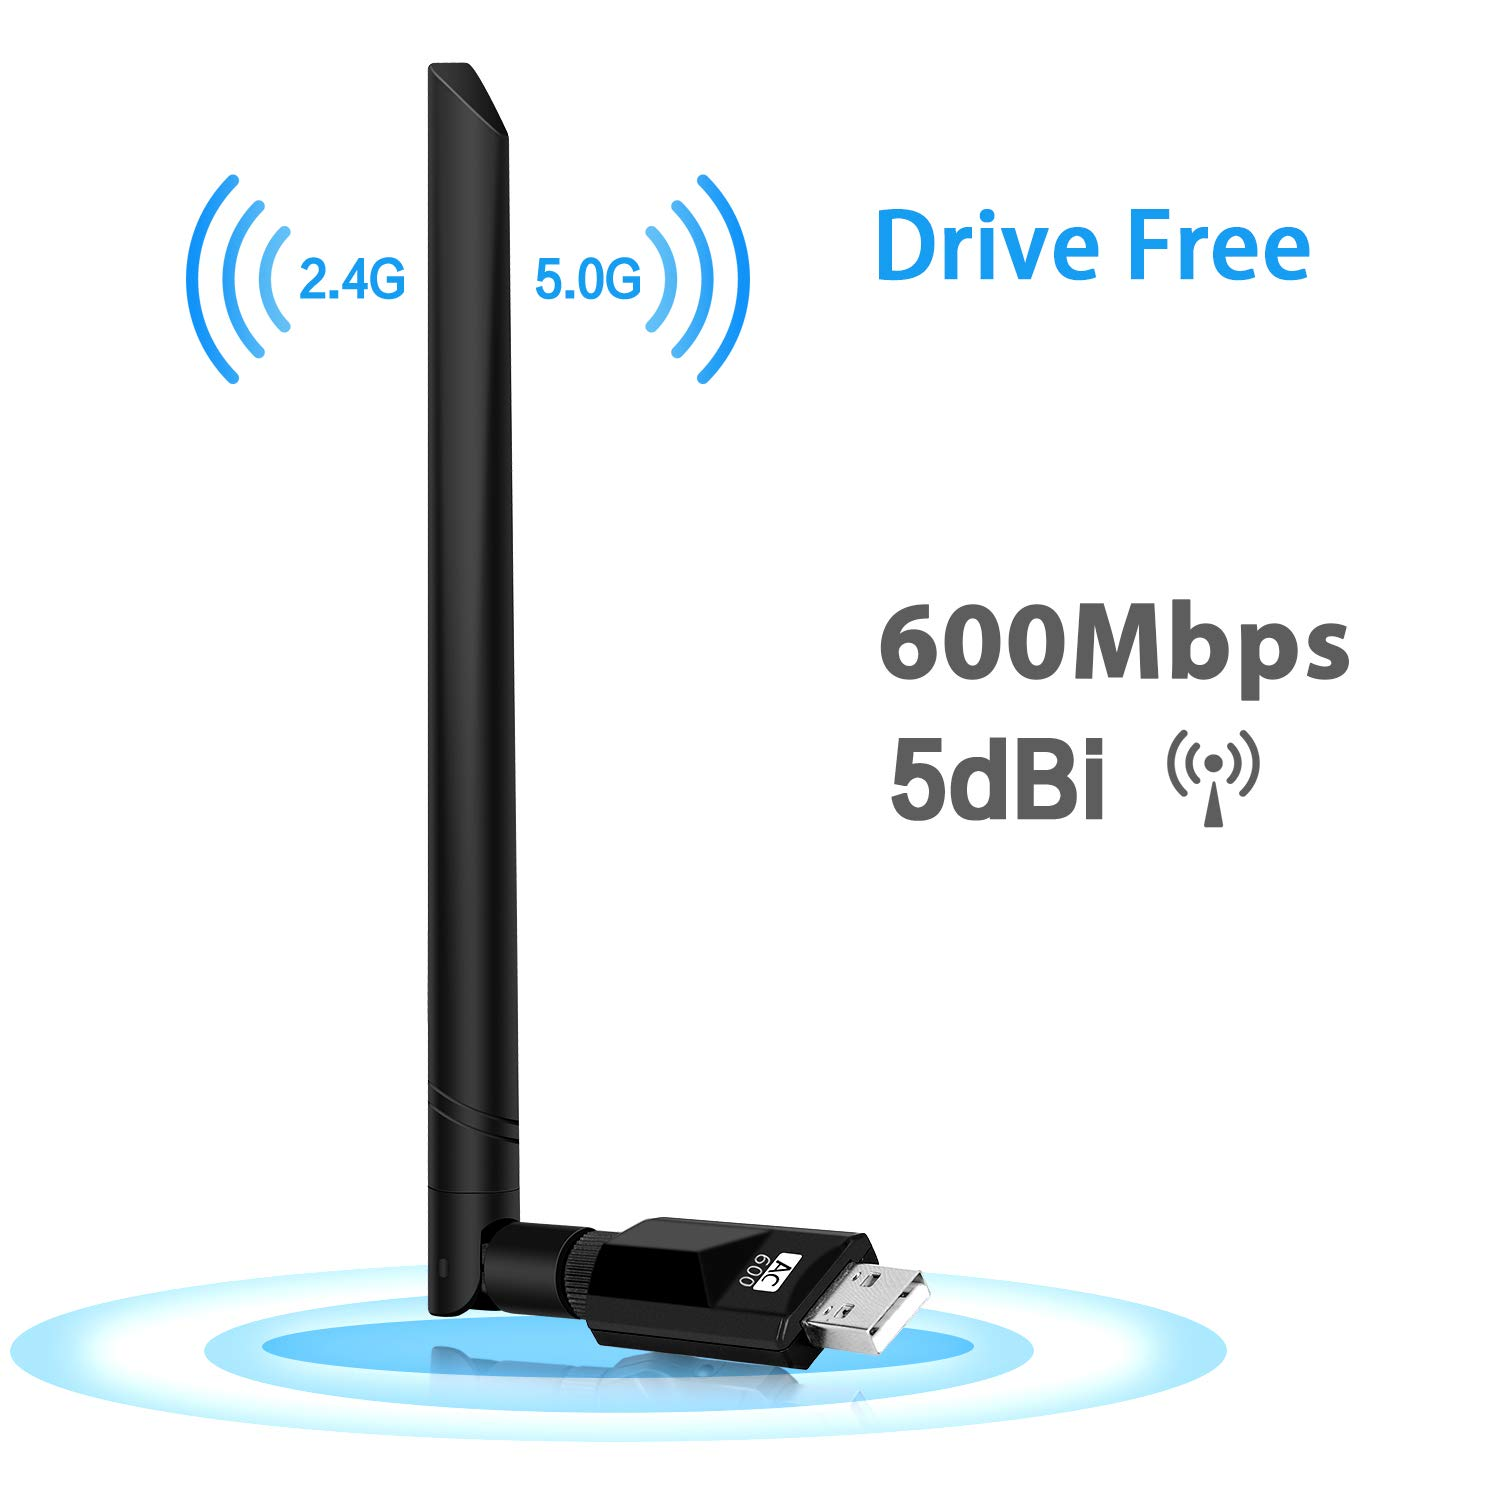 600Mbps USB WiFi Driver Free Adapter, Upow Wireless Network Adapter USB Wi-Fi Dongle Adapter with 5dBi Rotating Antenna AC600 Dual Band 5Ghz 433Mbps 2.4GHz 150Mbps Automatic Installation without CD-Rom Support Windows XP/ Win7/ 8/ 8.1/ 10/ Linux Mac OS